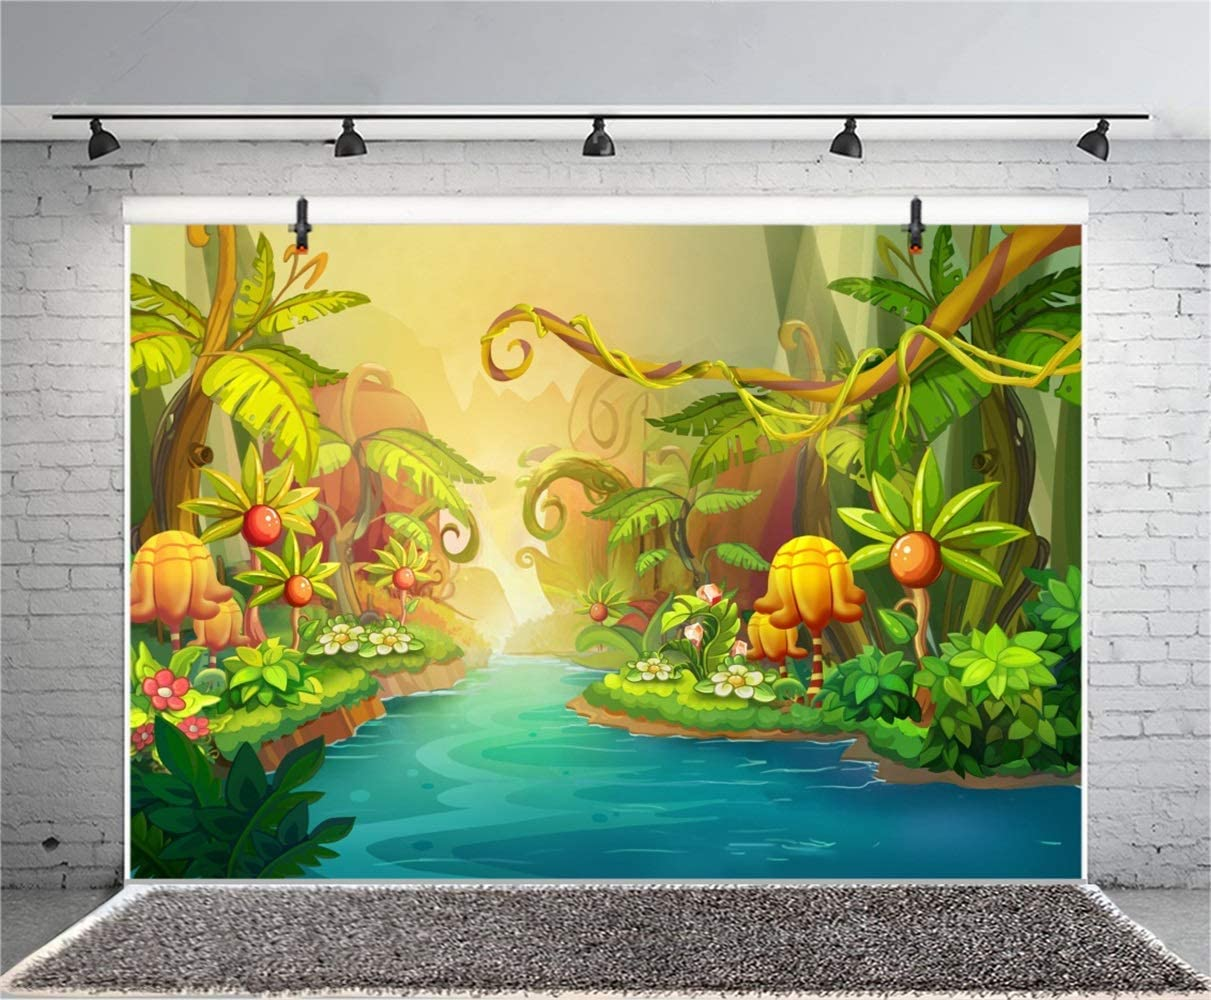 Cartoon Tropical Jungle Forest Backdrop Polyester 10x6.5ft Fairytale Story River in The Woods Flowers Lush Plants Background Baby Birthday Party Banner Cake Smash Child Baby Portrait Shoot